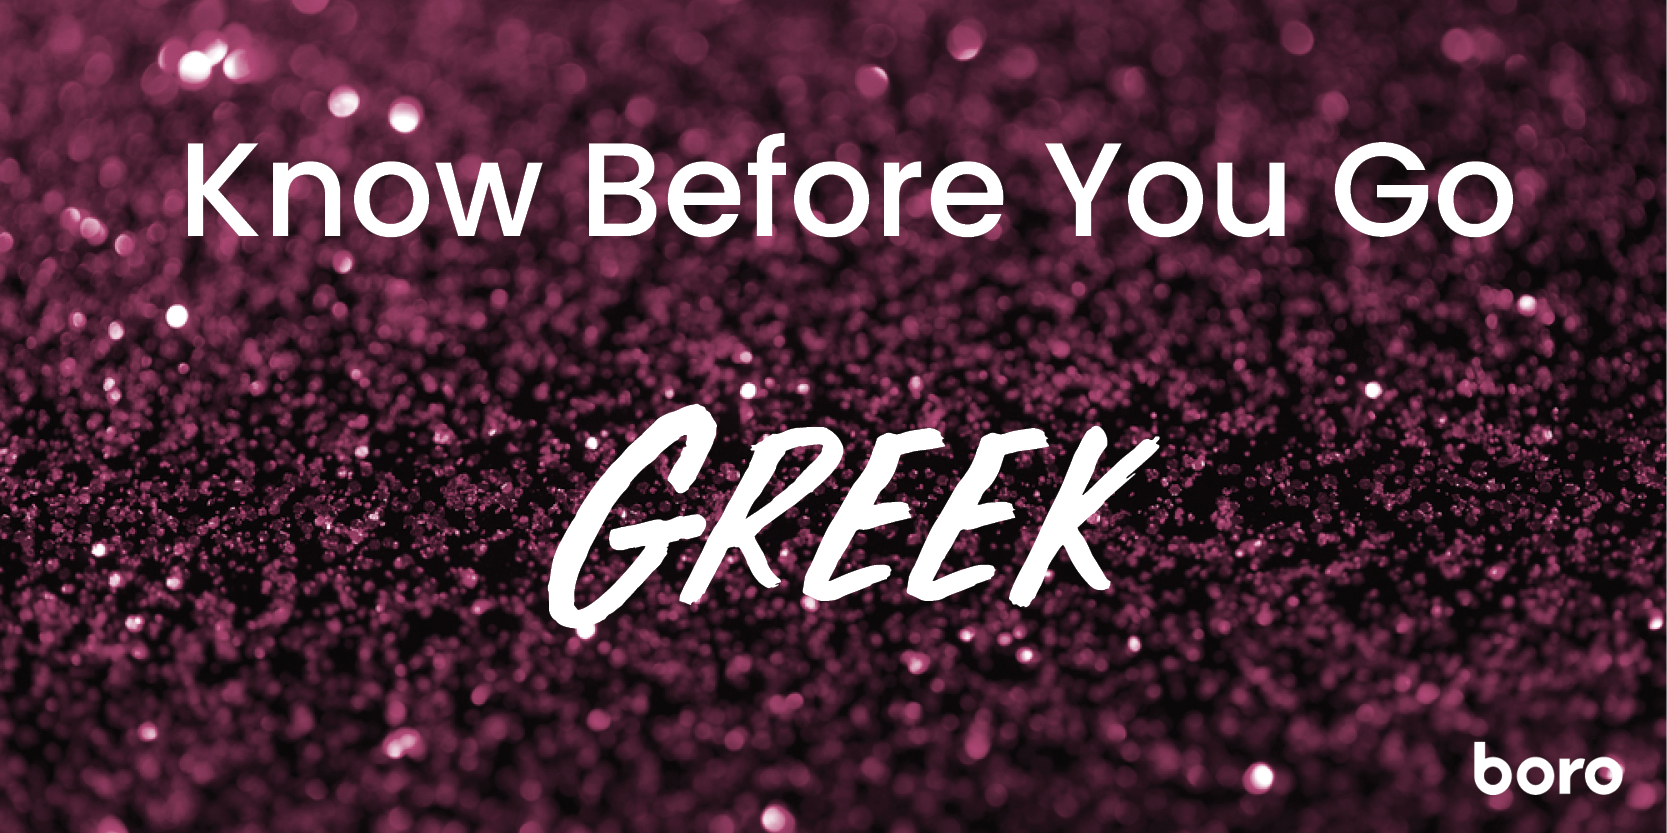 Know Before You Go (Greek)